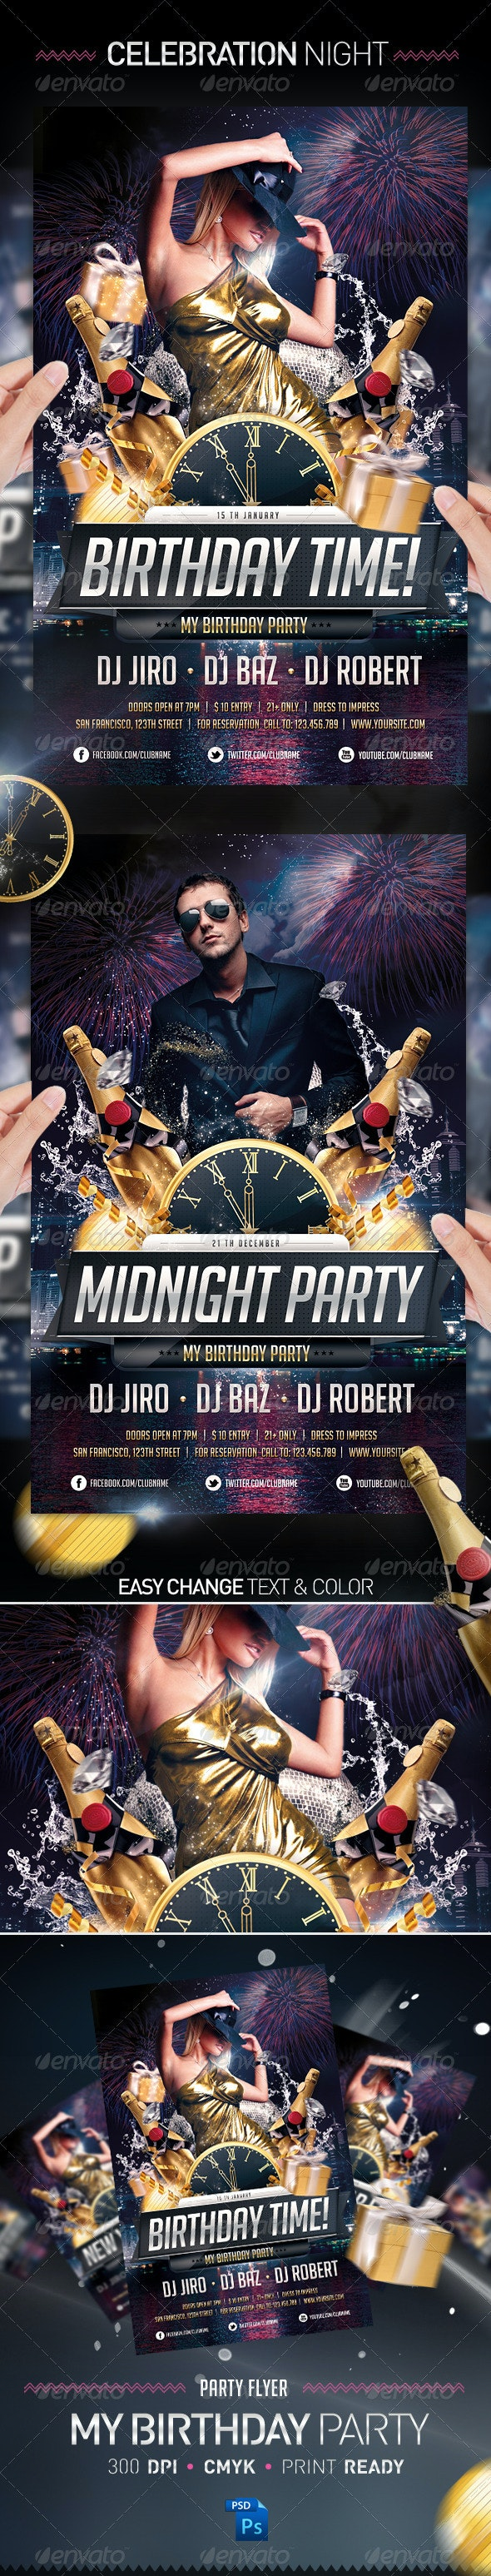 Birthday & Midnight Celebration Party Flyer - Clubs & Parties Events